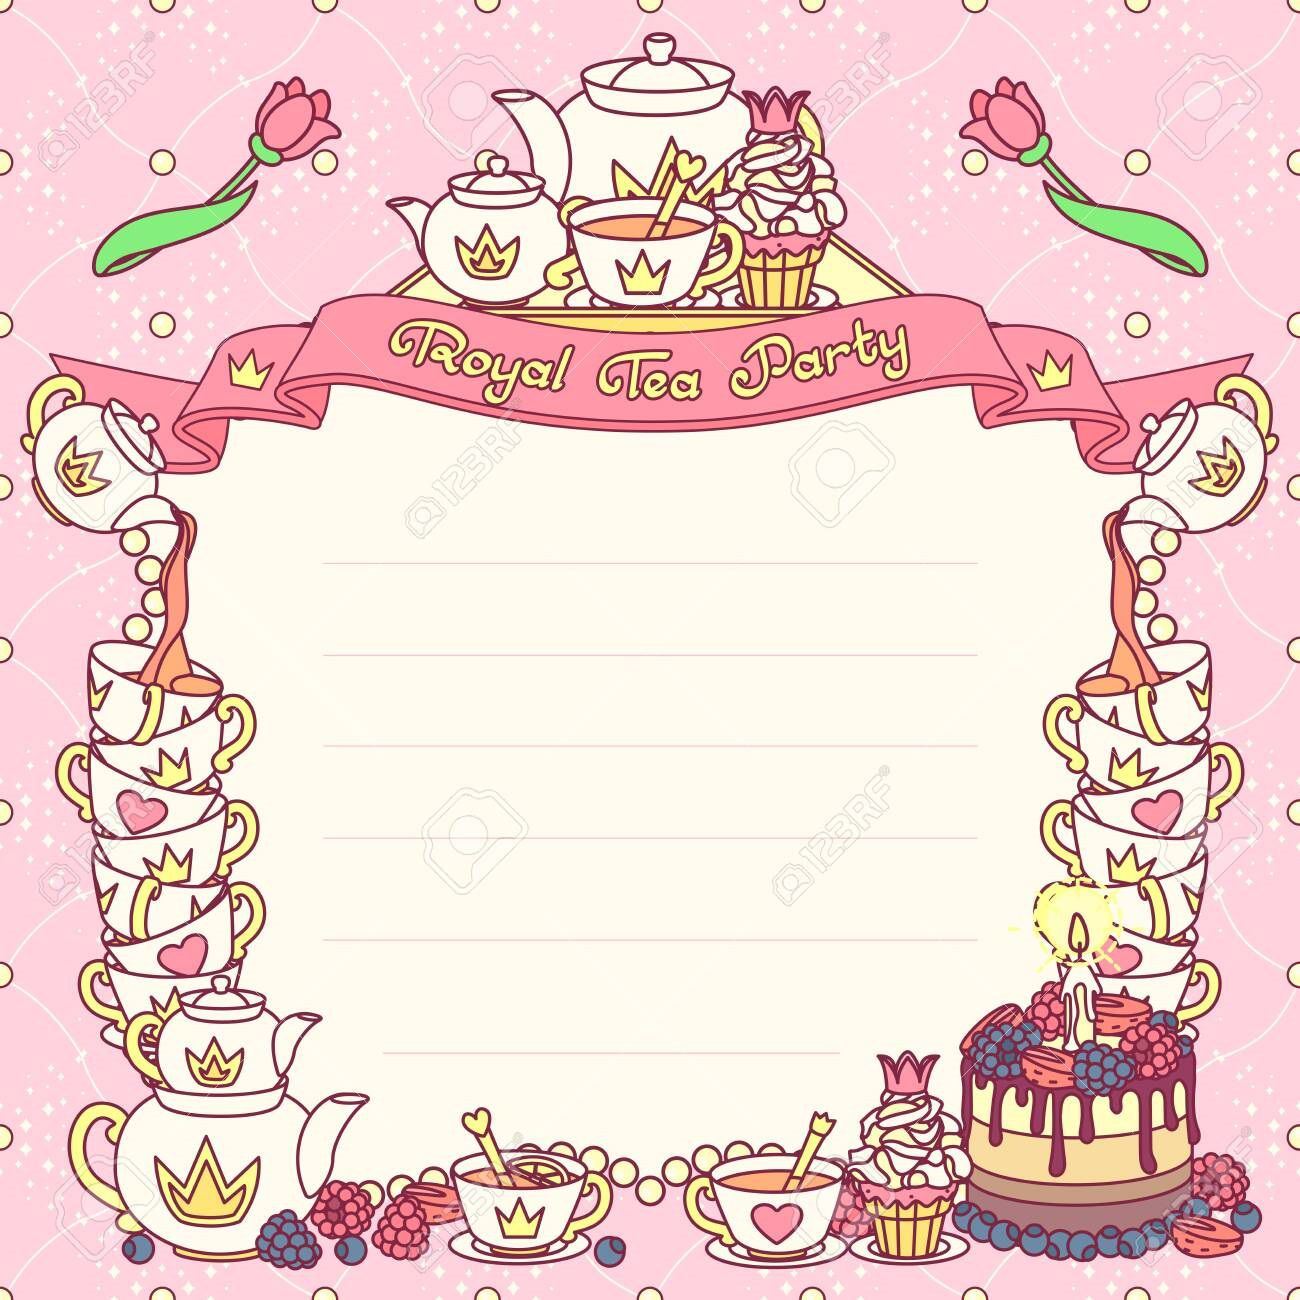 006 Sensational Tea Party Invitation Template Picture  Online LetterFull